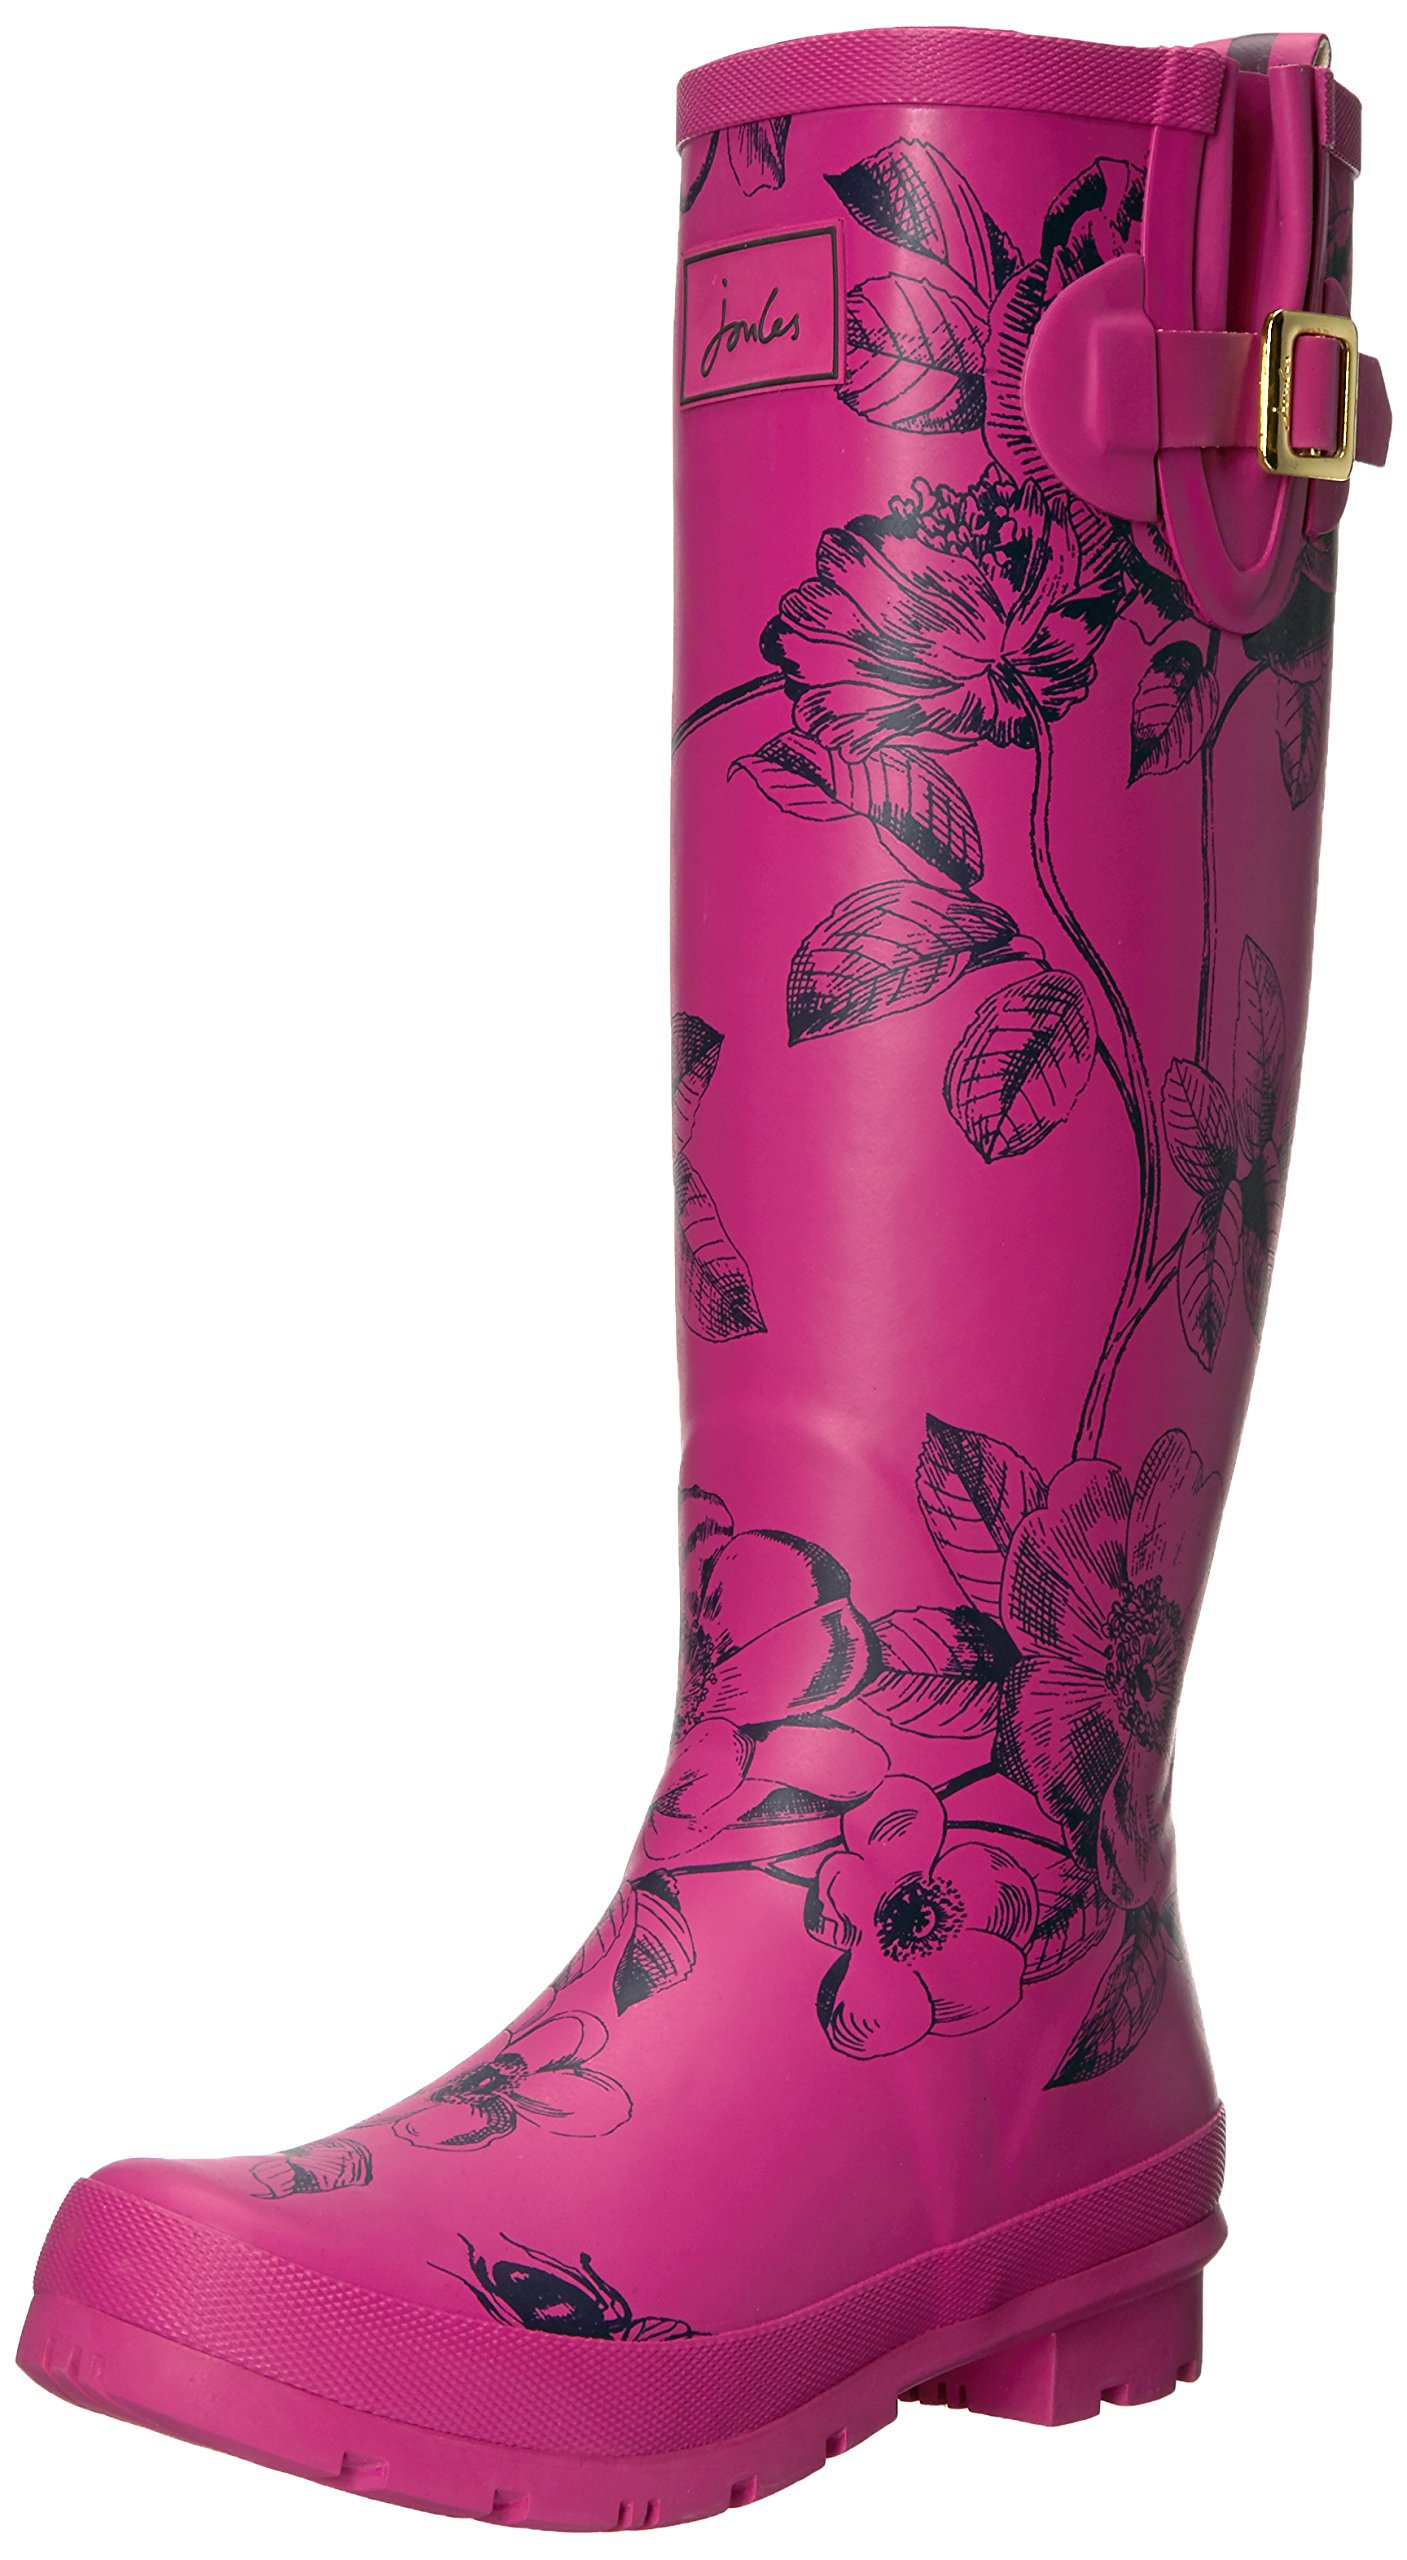 Joules Women's Welly Print Rain Boot, Pink Floral, 10 M US